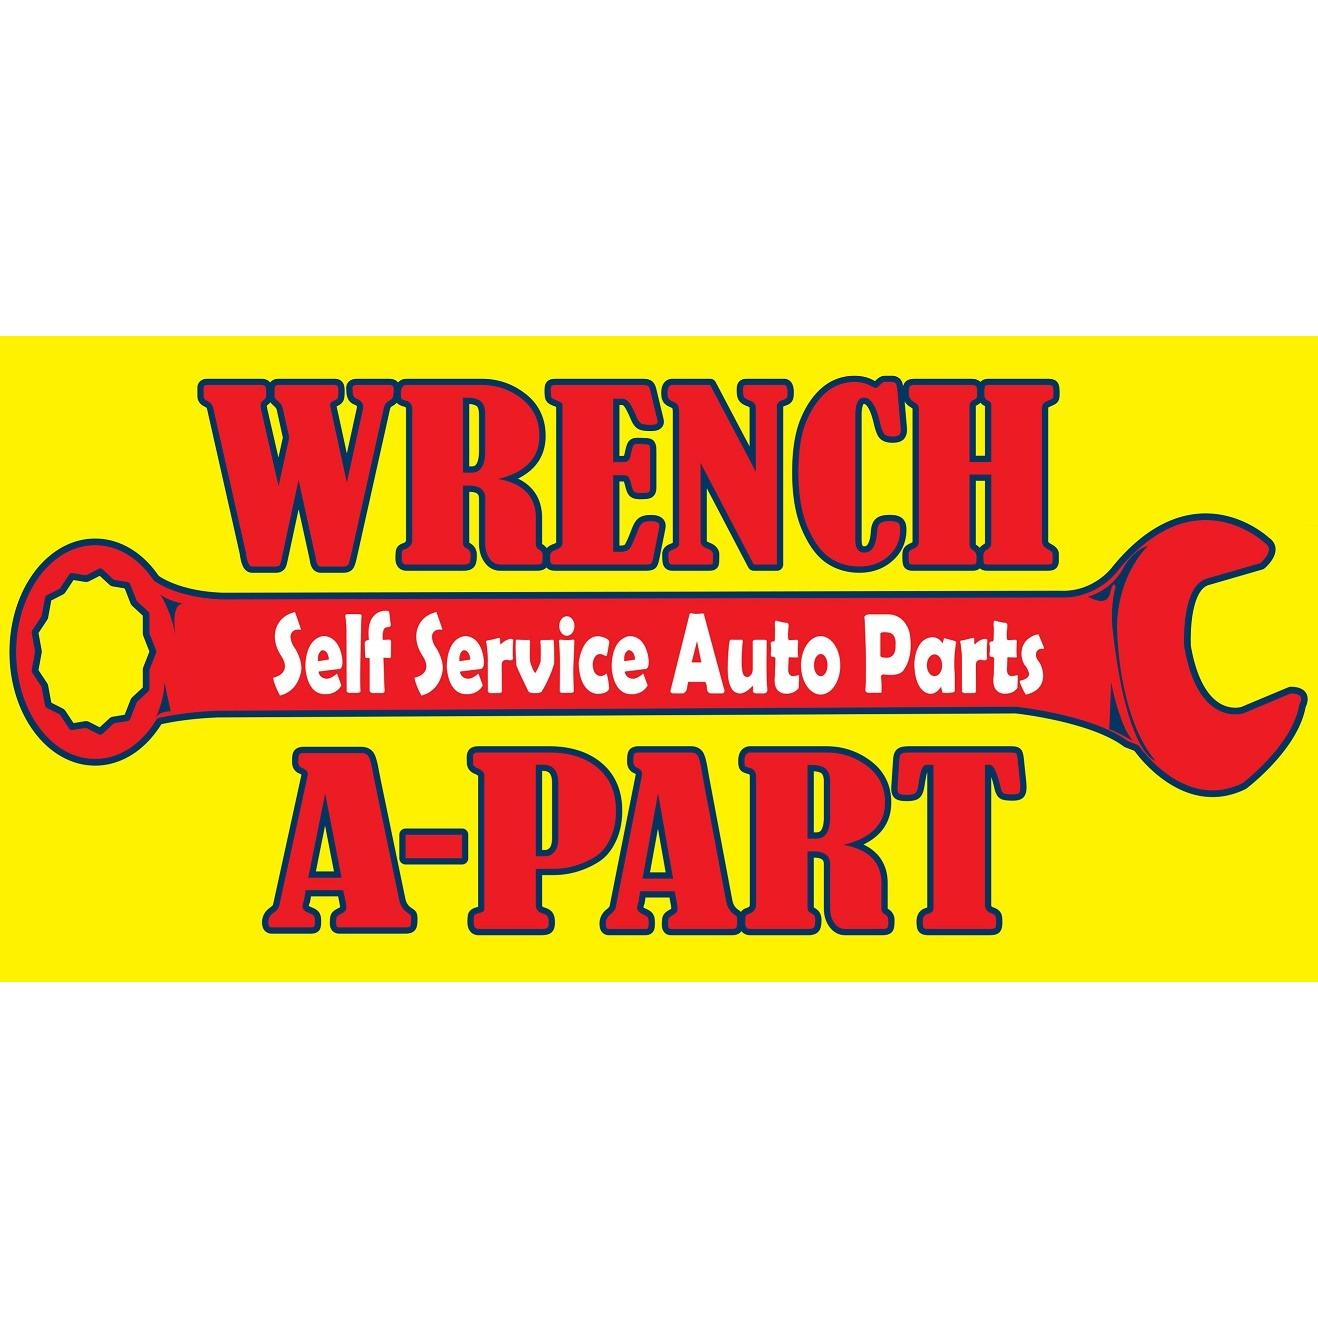 San Antonio Wrench A Part 5814 Interstate 10 East San